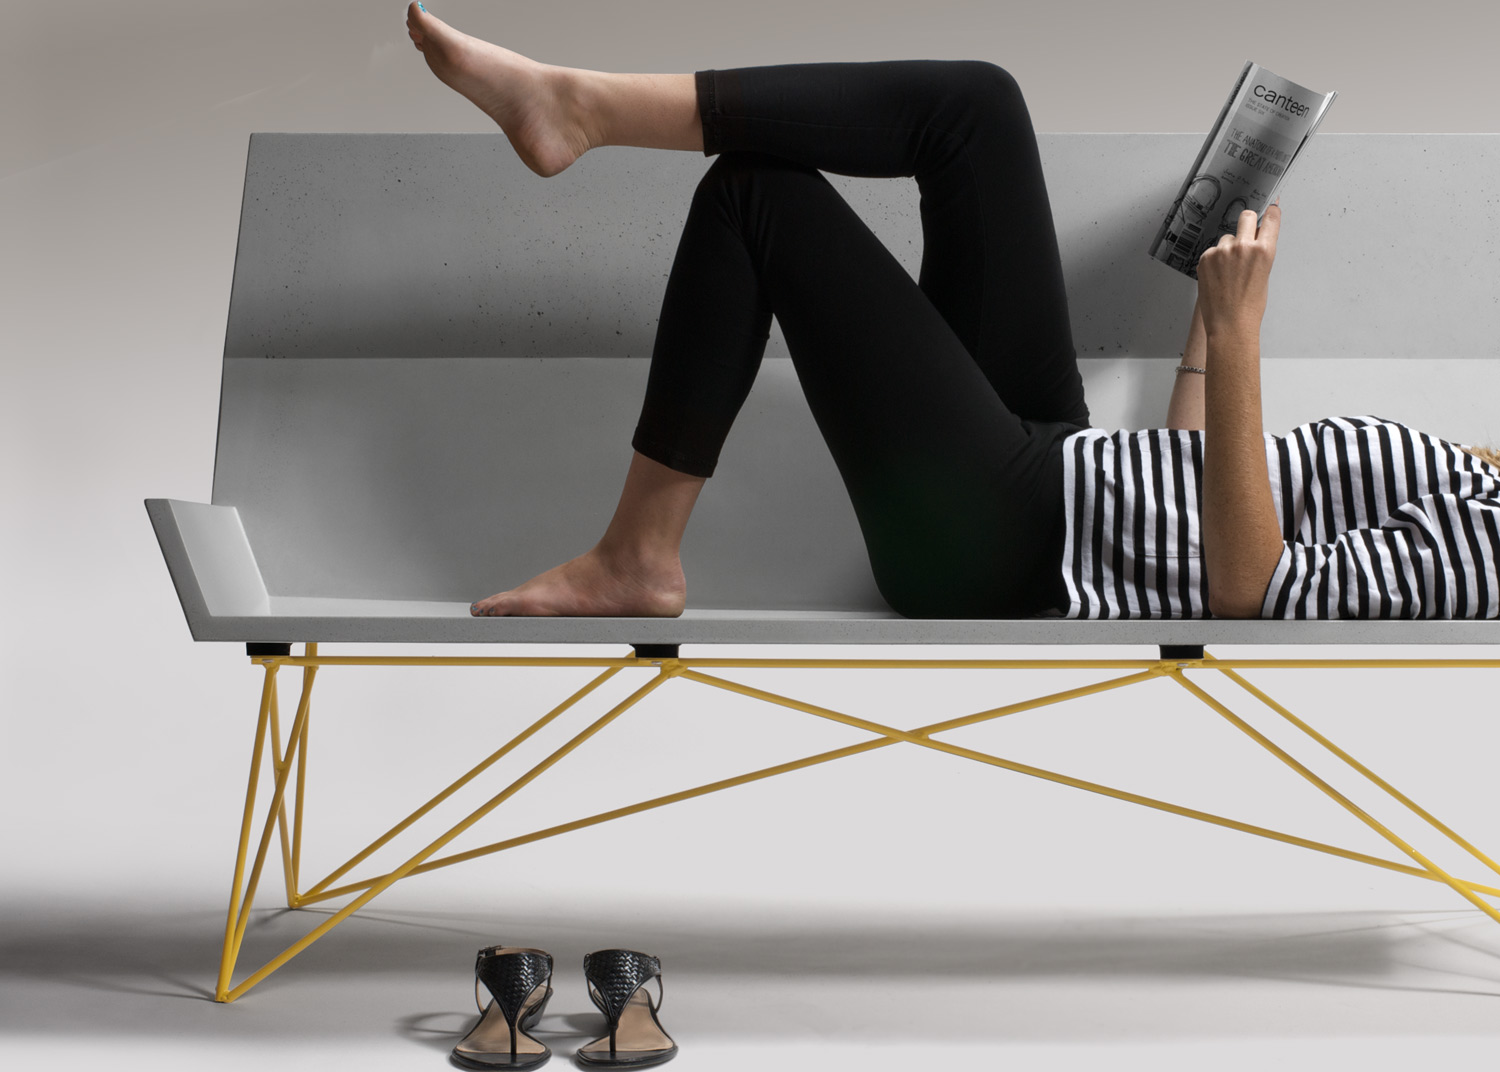 Relaxing on a custom concrete + steel mid century modern bench